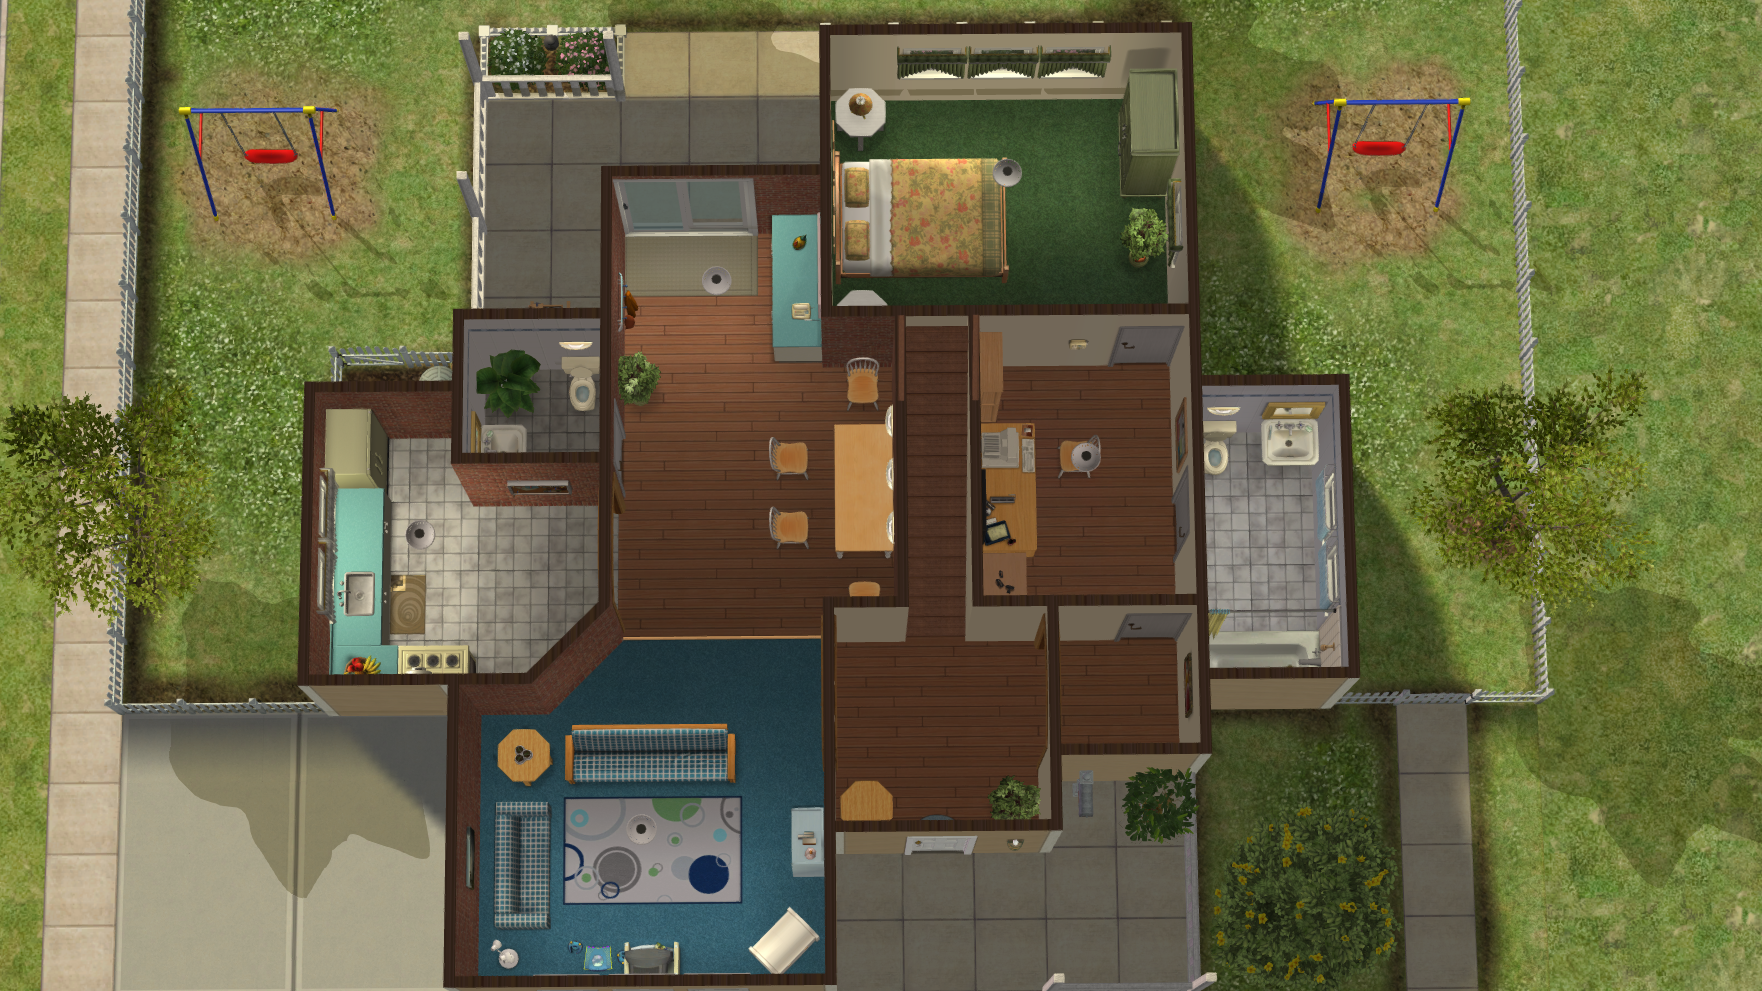 The Sims 2 Orphanage House for Pleasantview - Bottom Floor Inside